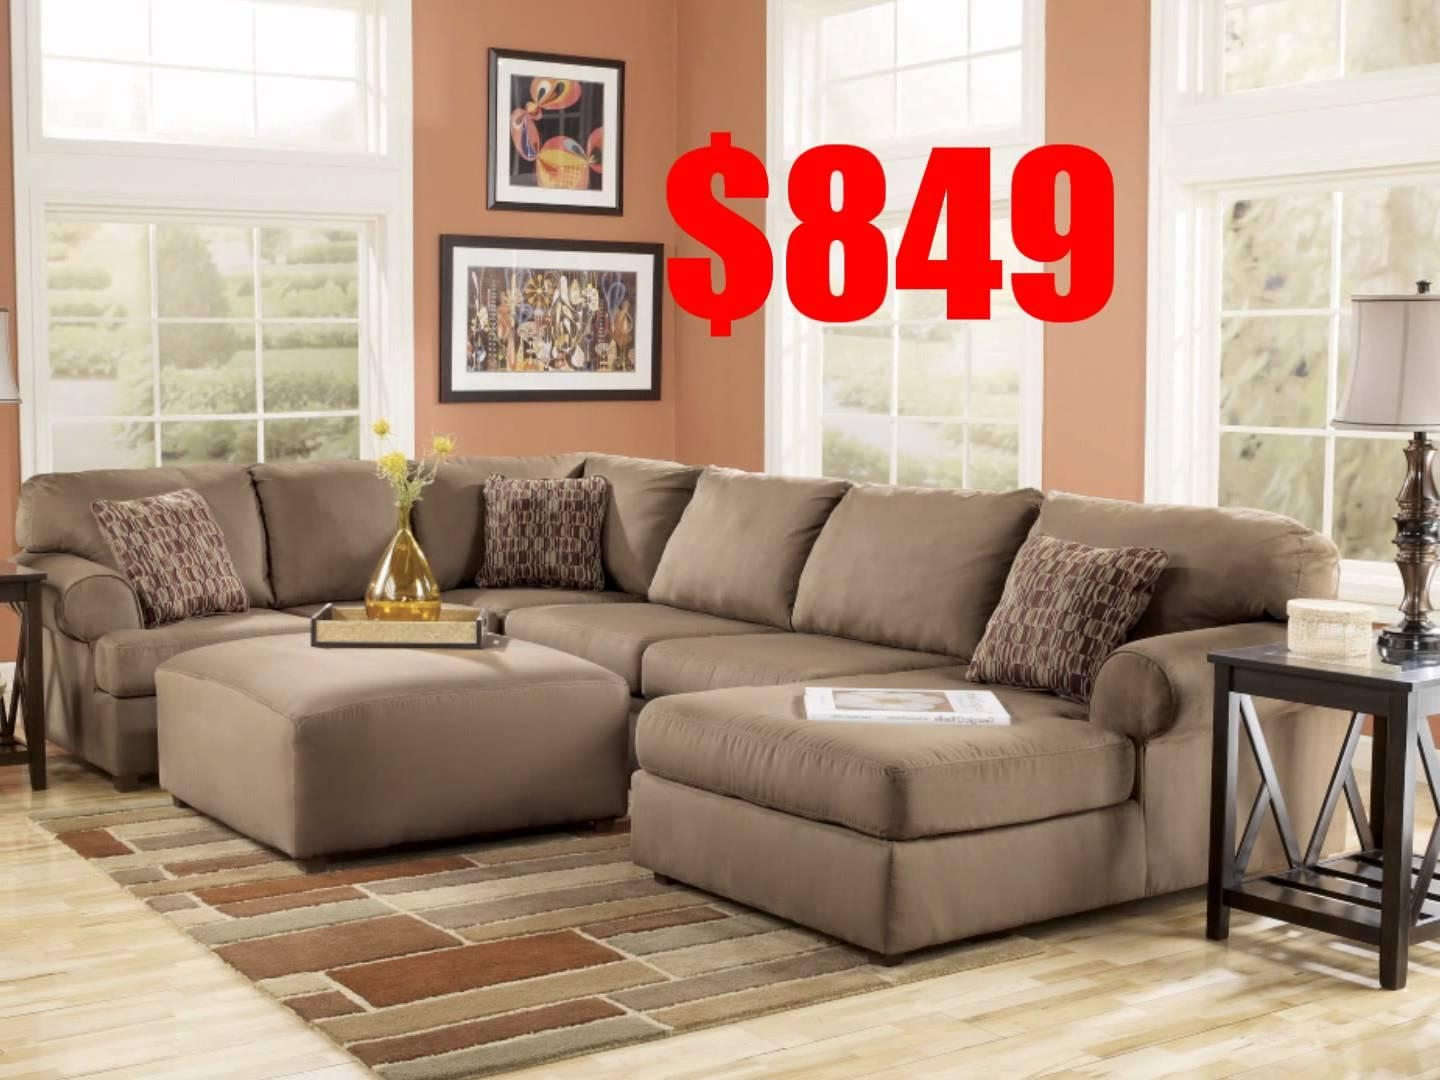 Decorating: Fill Your Living Room With Elegant Ashley Furniture Throughout Ashley Furniture Grenada Sectional (View 7 of 15)